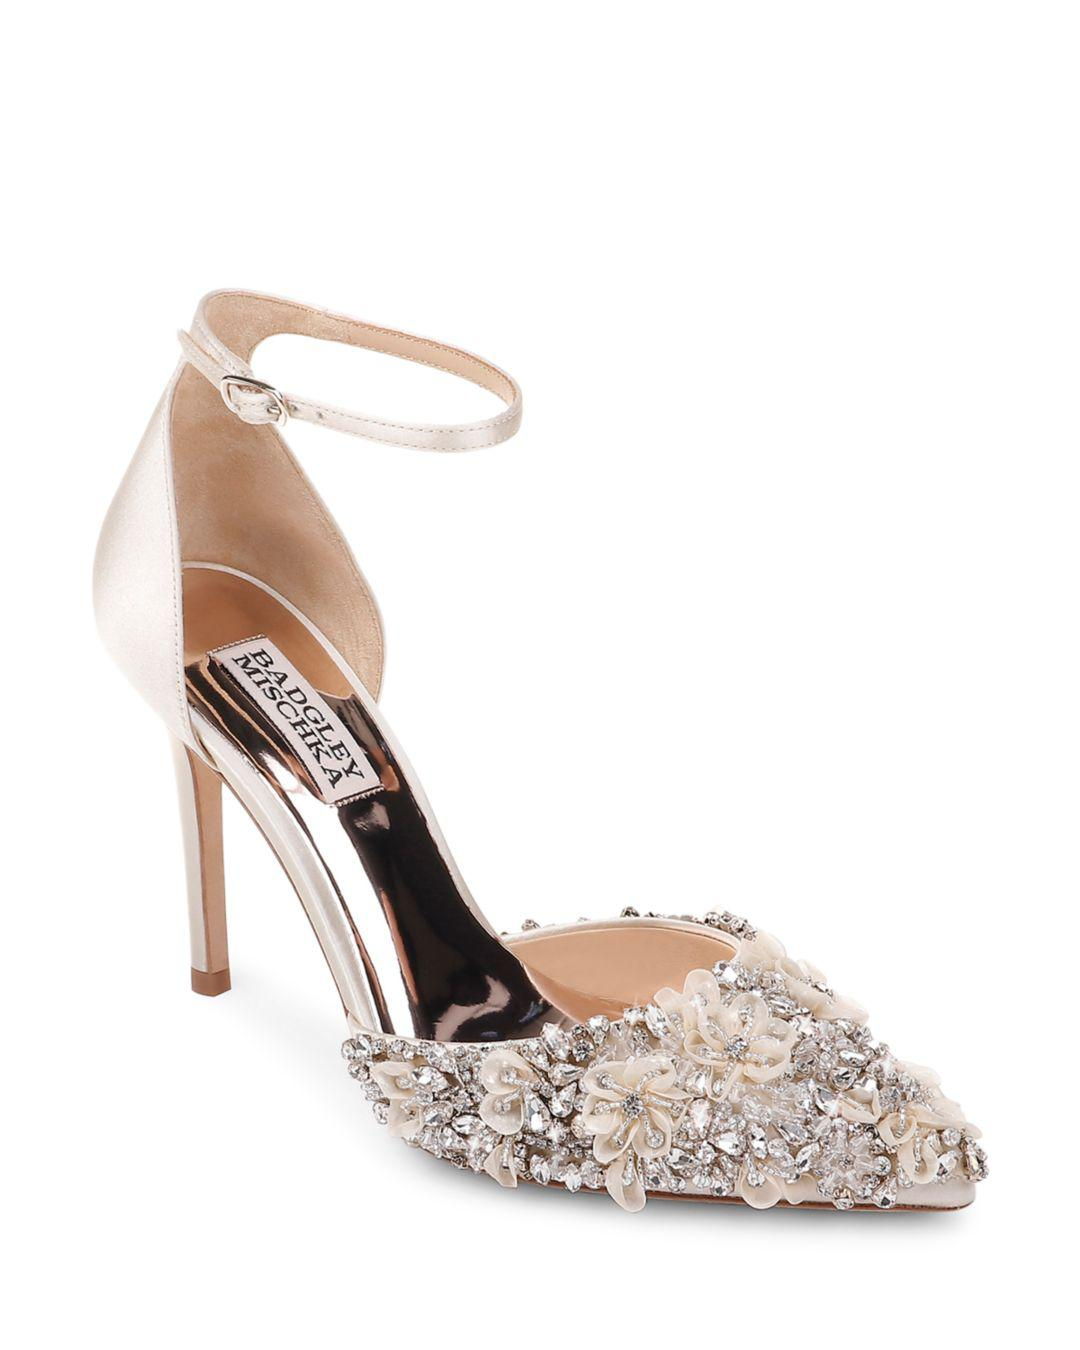 79ae6ec76a3 Lyst - Badgley Mischka Women s Fey Embellished Satin Pumps in White